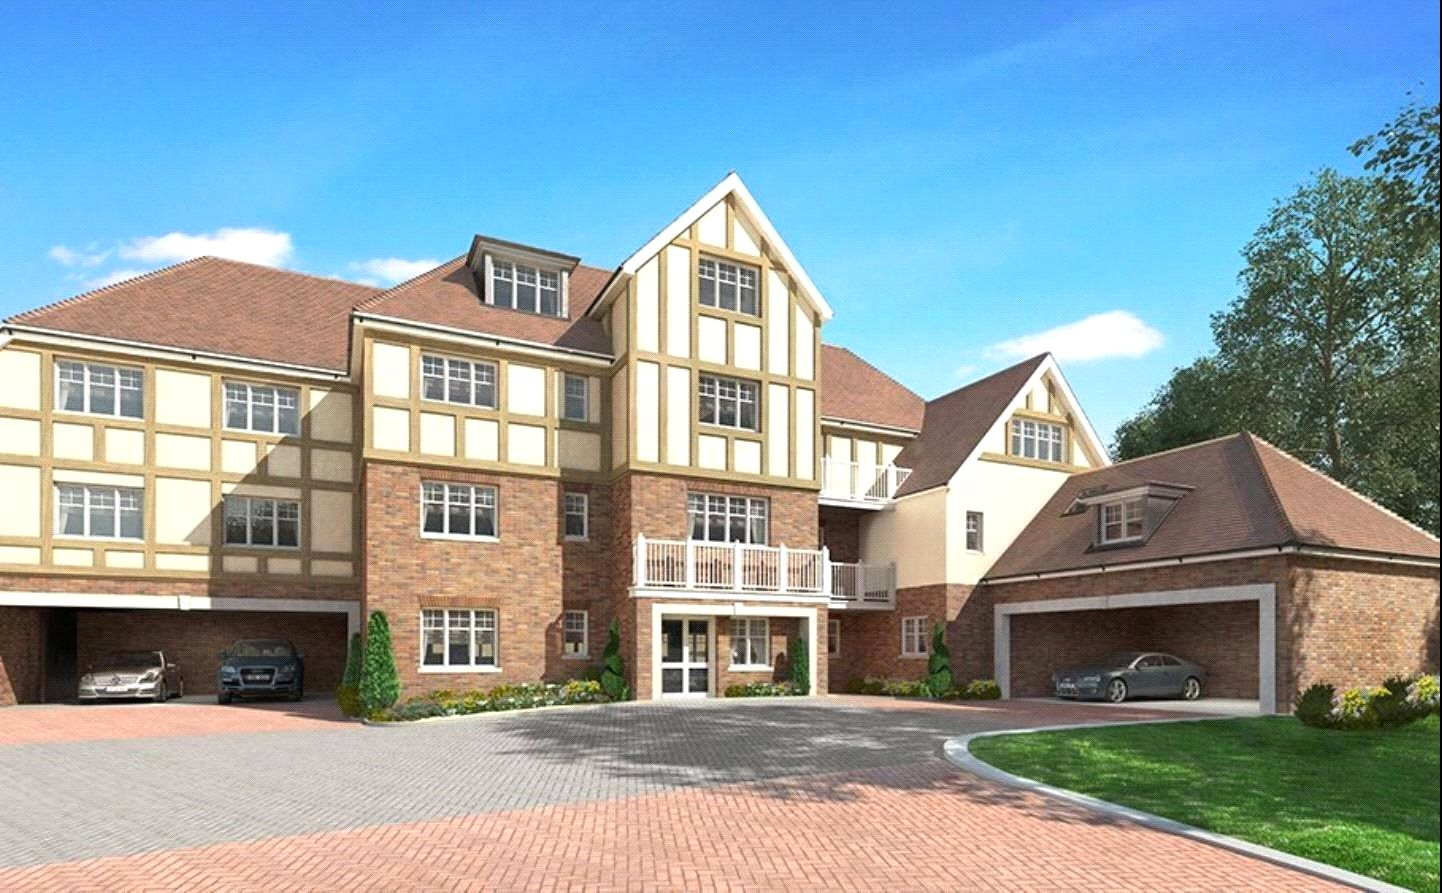 Apartments / Flats for Sale at High Peak, London Road, Sunningdale, Berkshire, SL5 Sunningdale, England